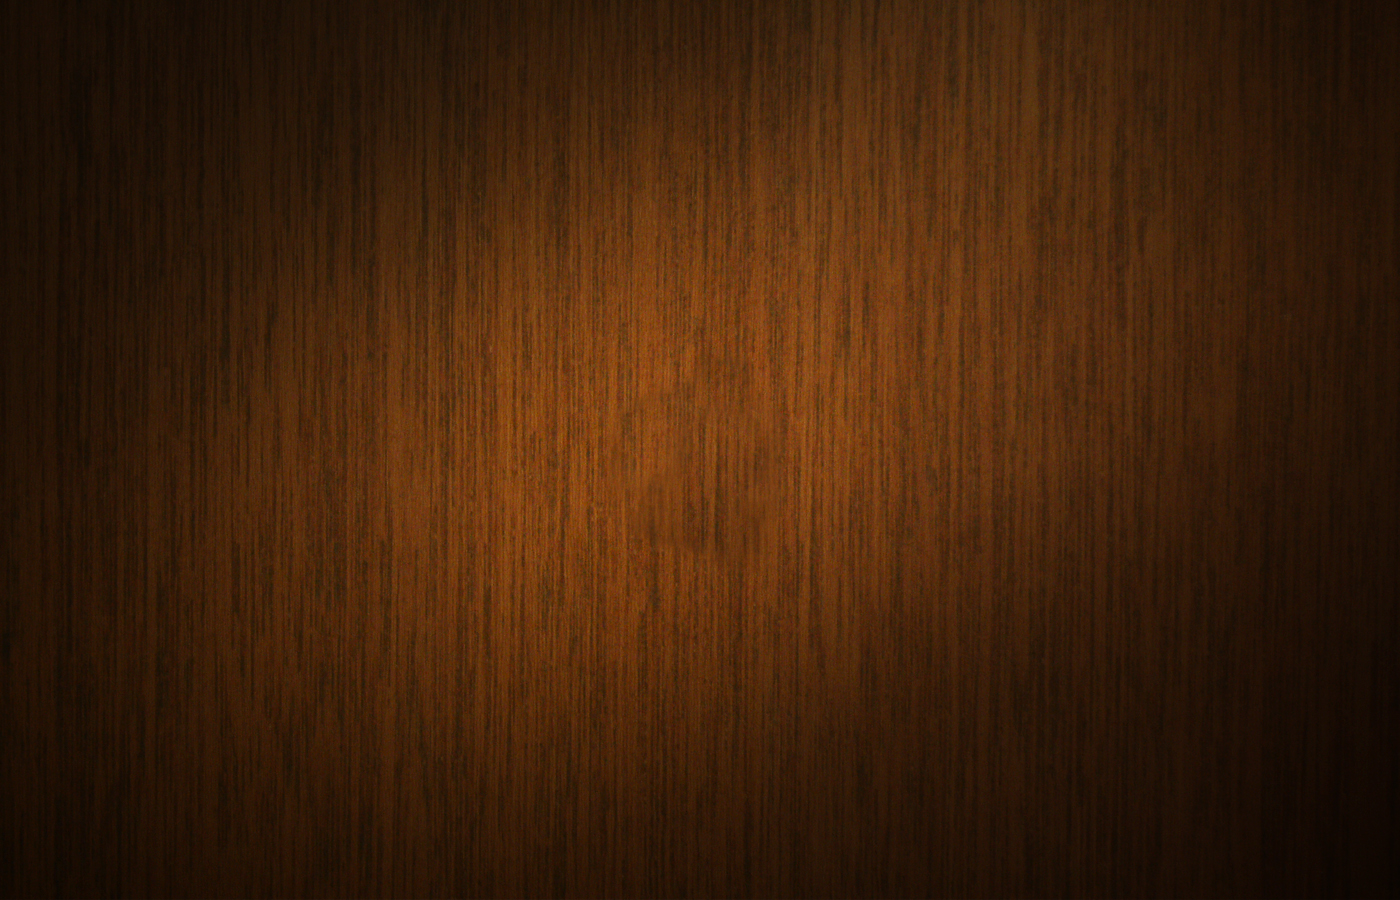 Texture Wood Download Image Photo Tree Wood